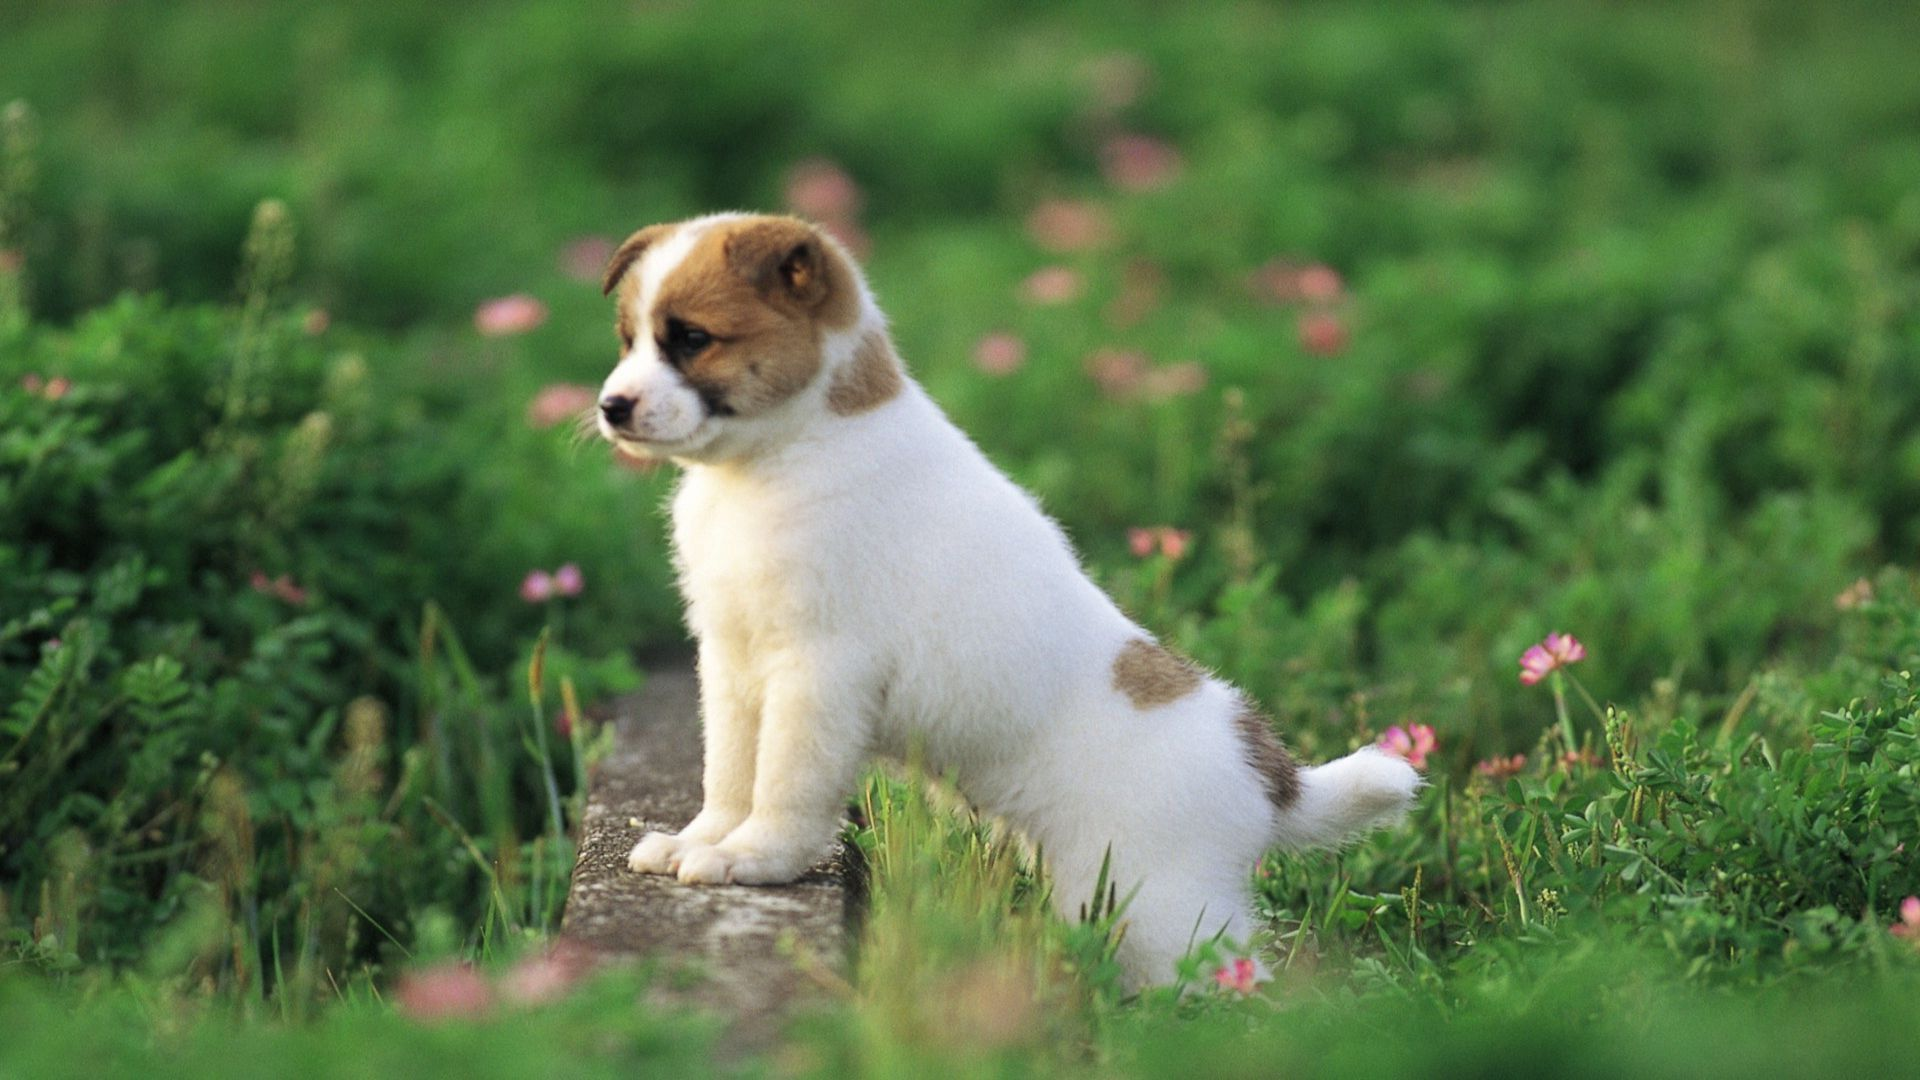 20 Of The Most Adorable Puppies With Spots Puppy Cute Puppies